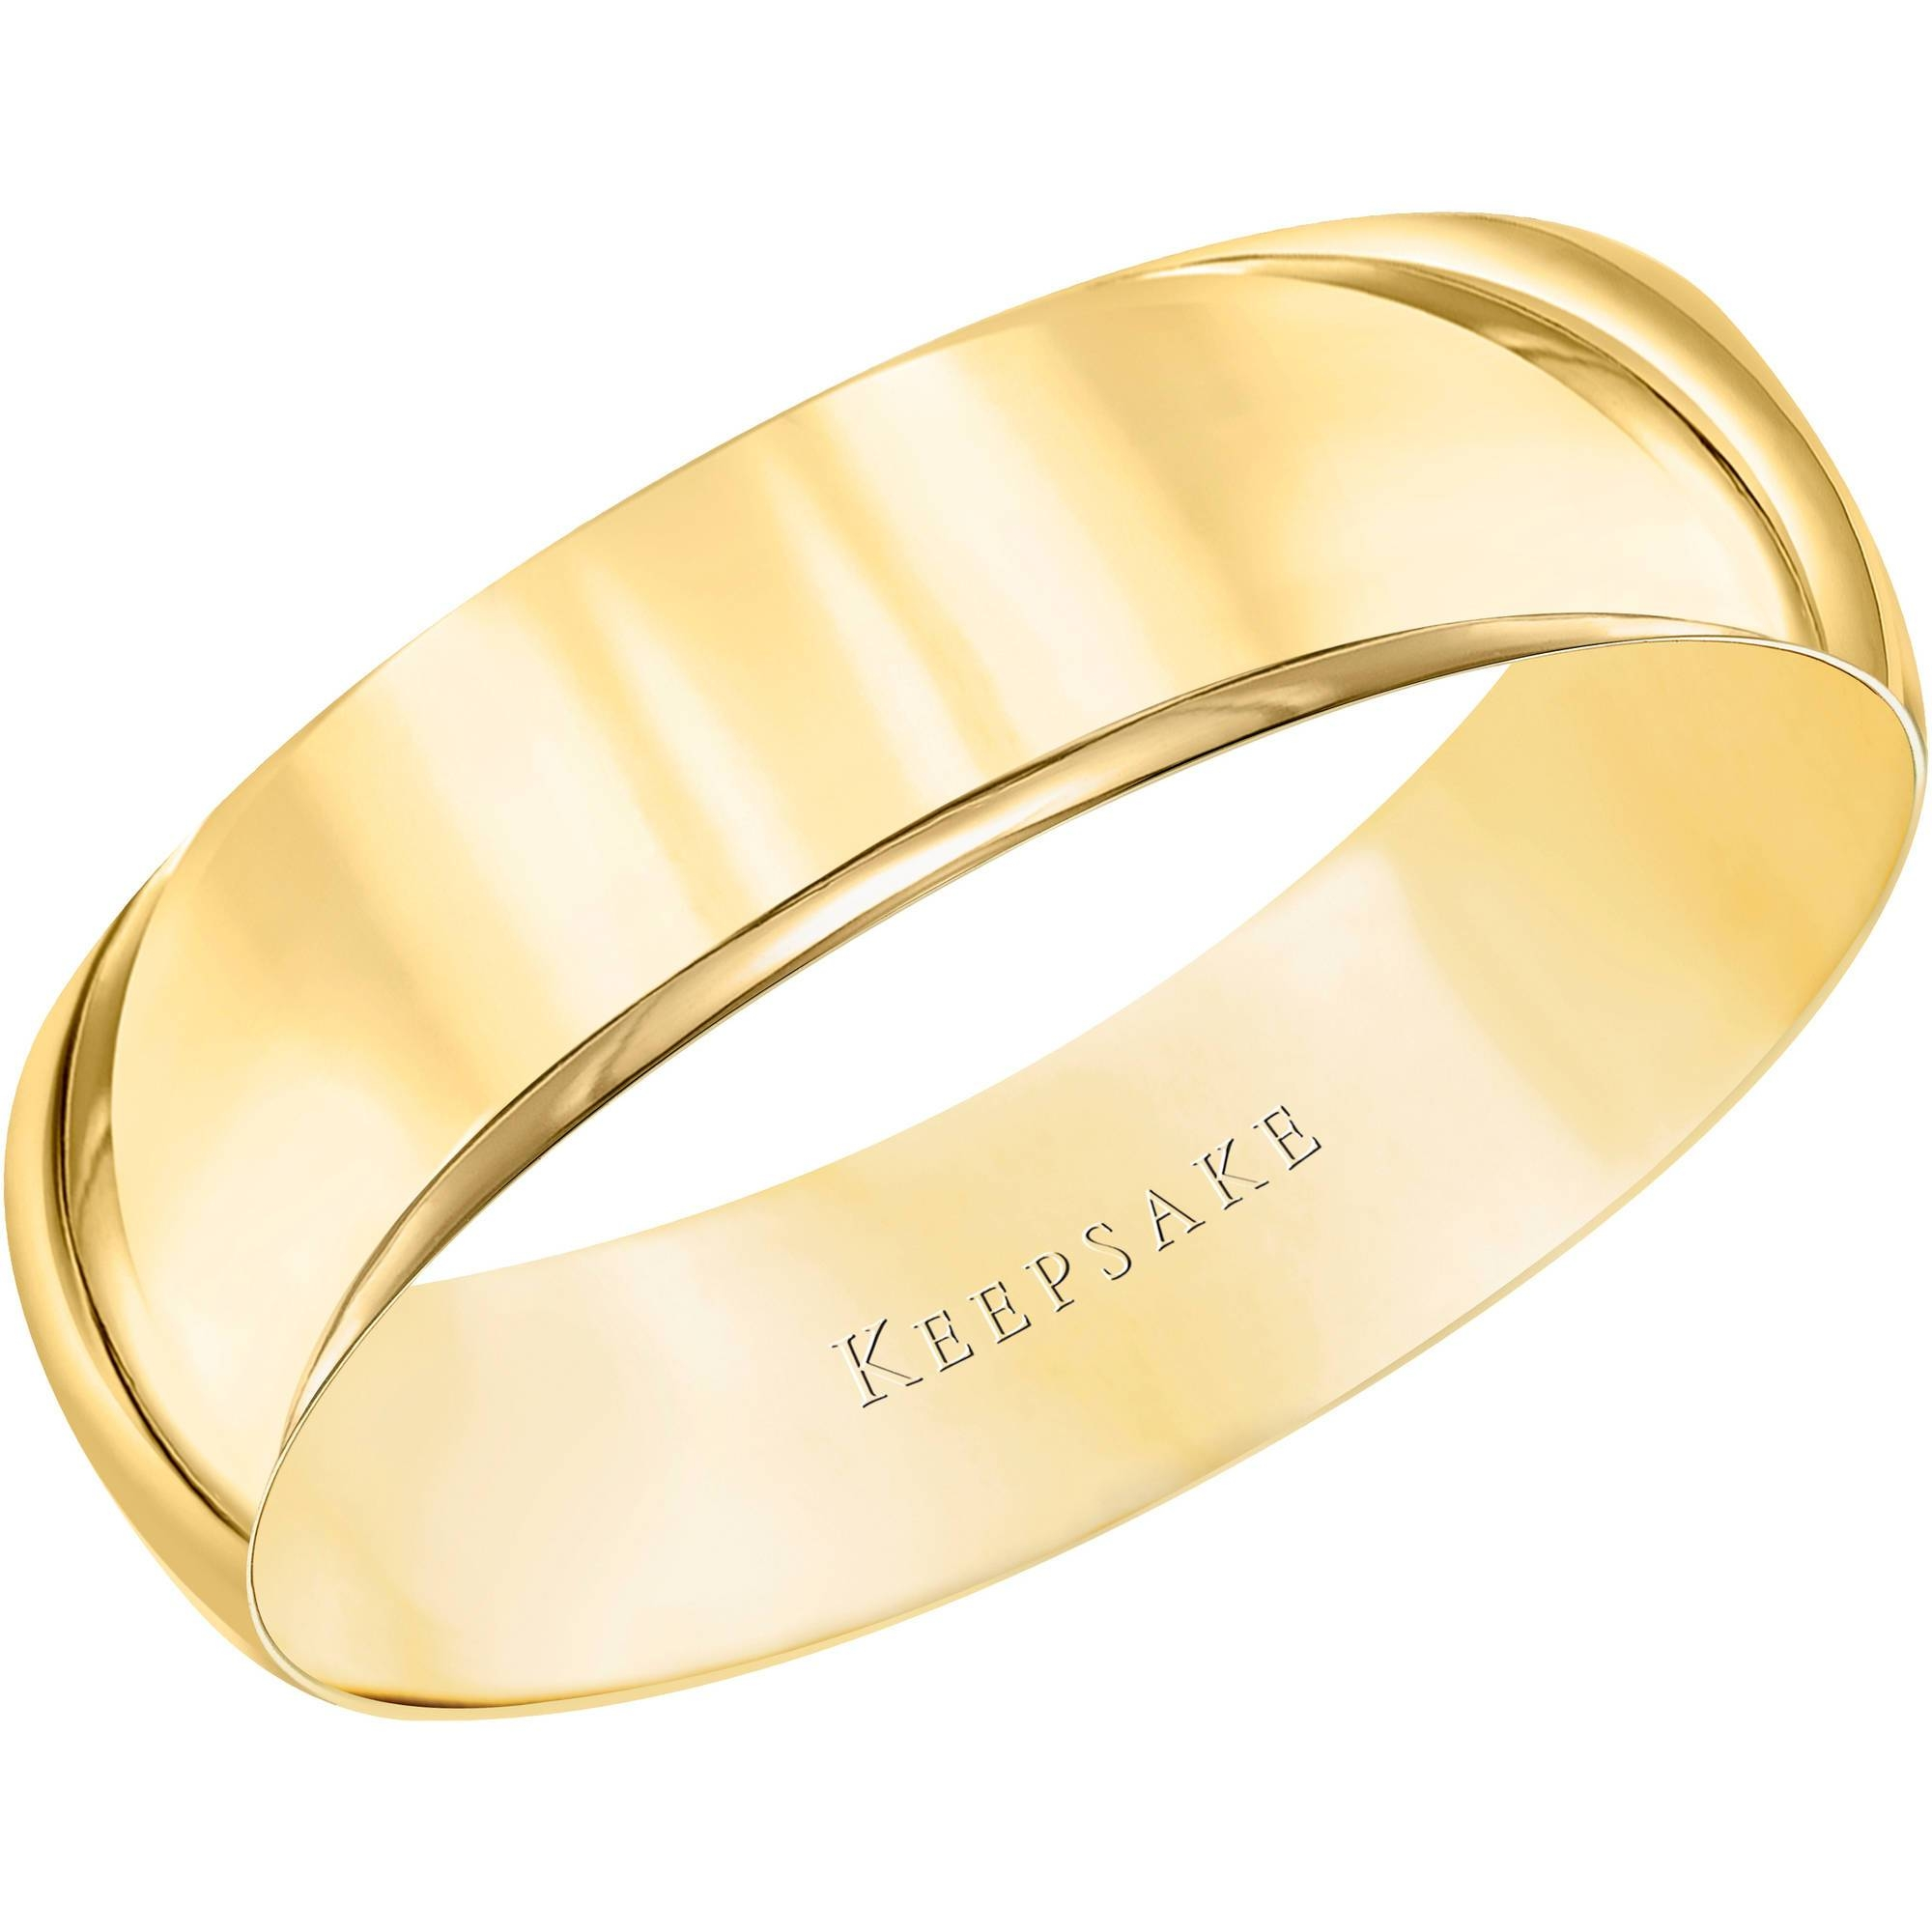 Keepsake 10Kt Yellow Gold Wedding Band With High Polish Finish Throughout Walmart Wedding Bands For Men (Gallery 11 of 15)